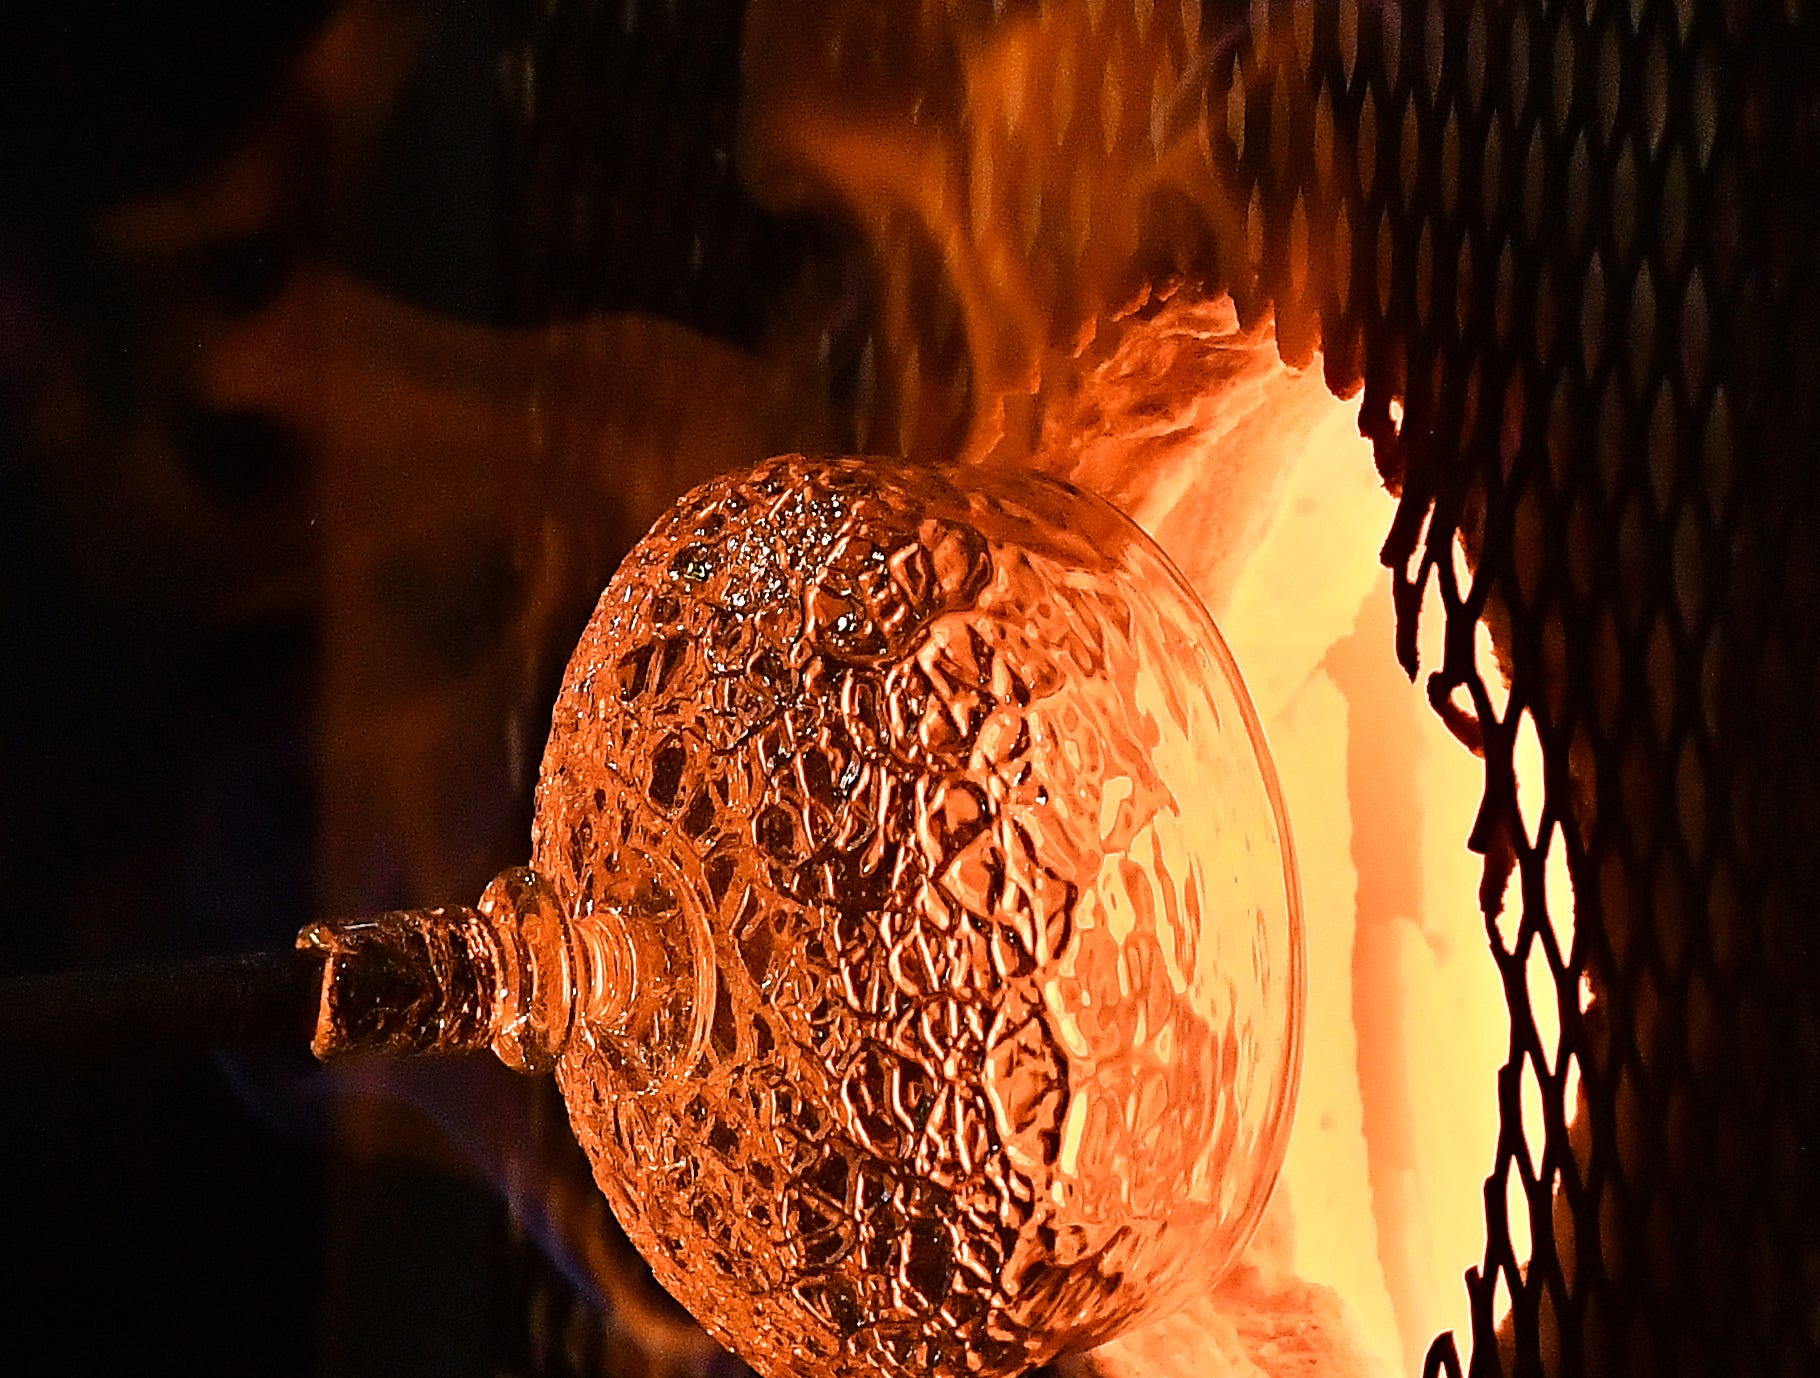 The top of a glass goblet comes out of the fire, created by artists Louie Sanchez and Rebecca Silverman, at the Russell Industrial Center in Detroit on July 20, 2018. The nonprofit Michigan Glass Project holds annual events to raise funds for local causes.